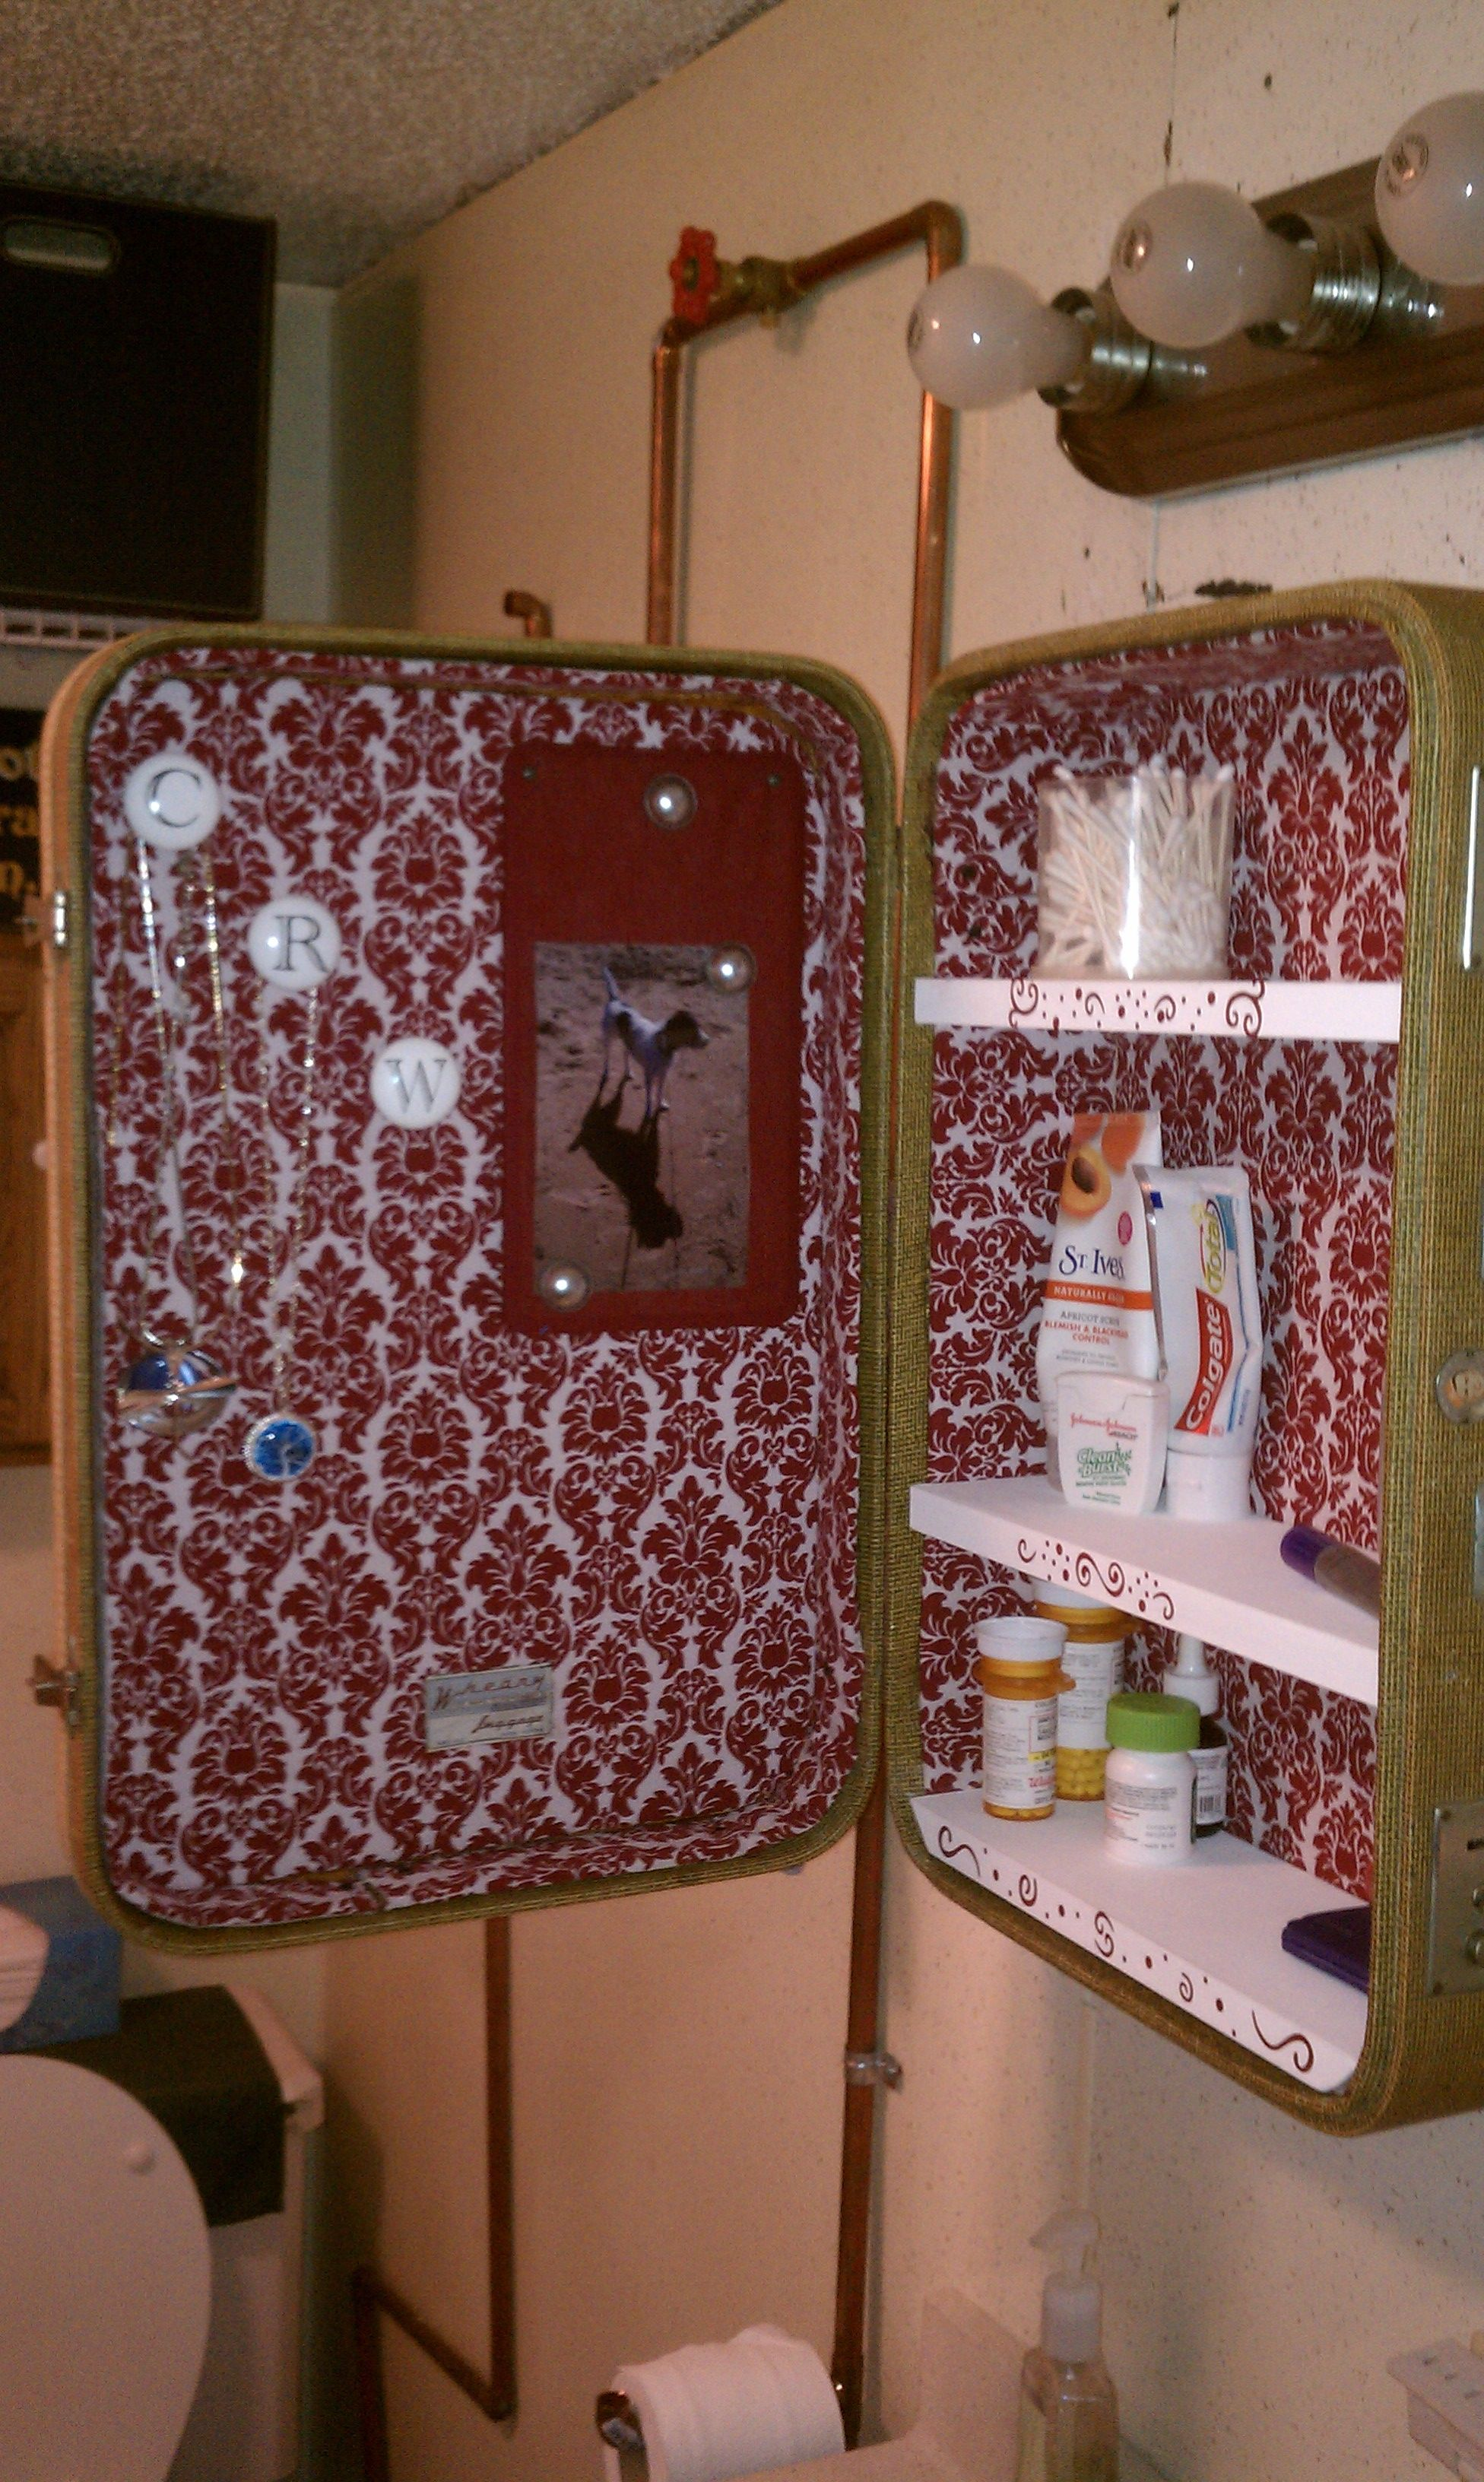 Inside of my upcycled vintage suitcase turned medicine cabinet! (w/door knobs to hang jewelery and a magnet board for pics, etc)